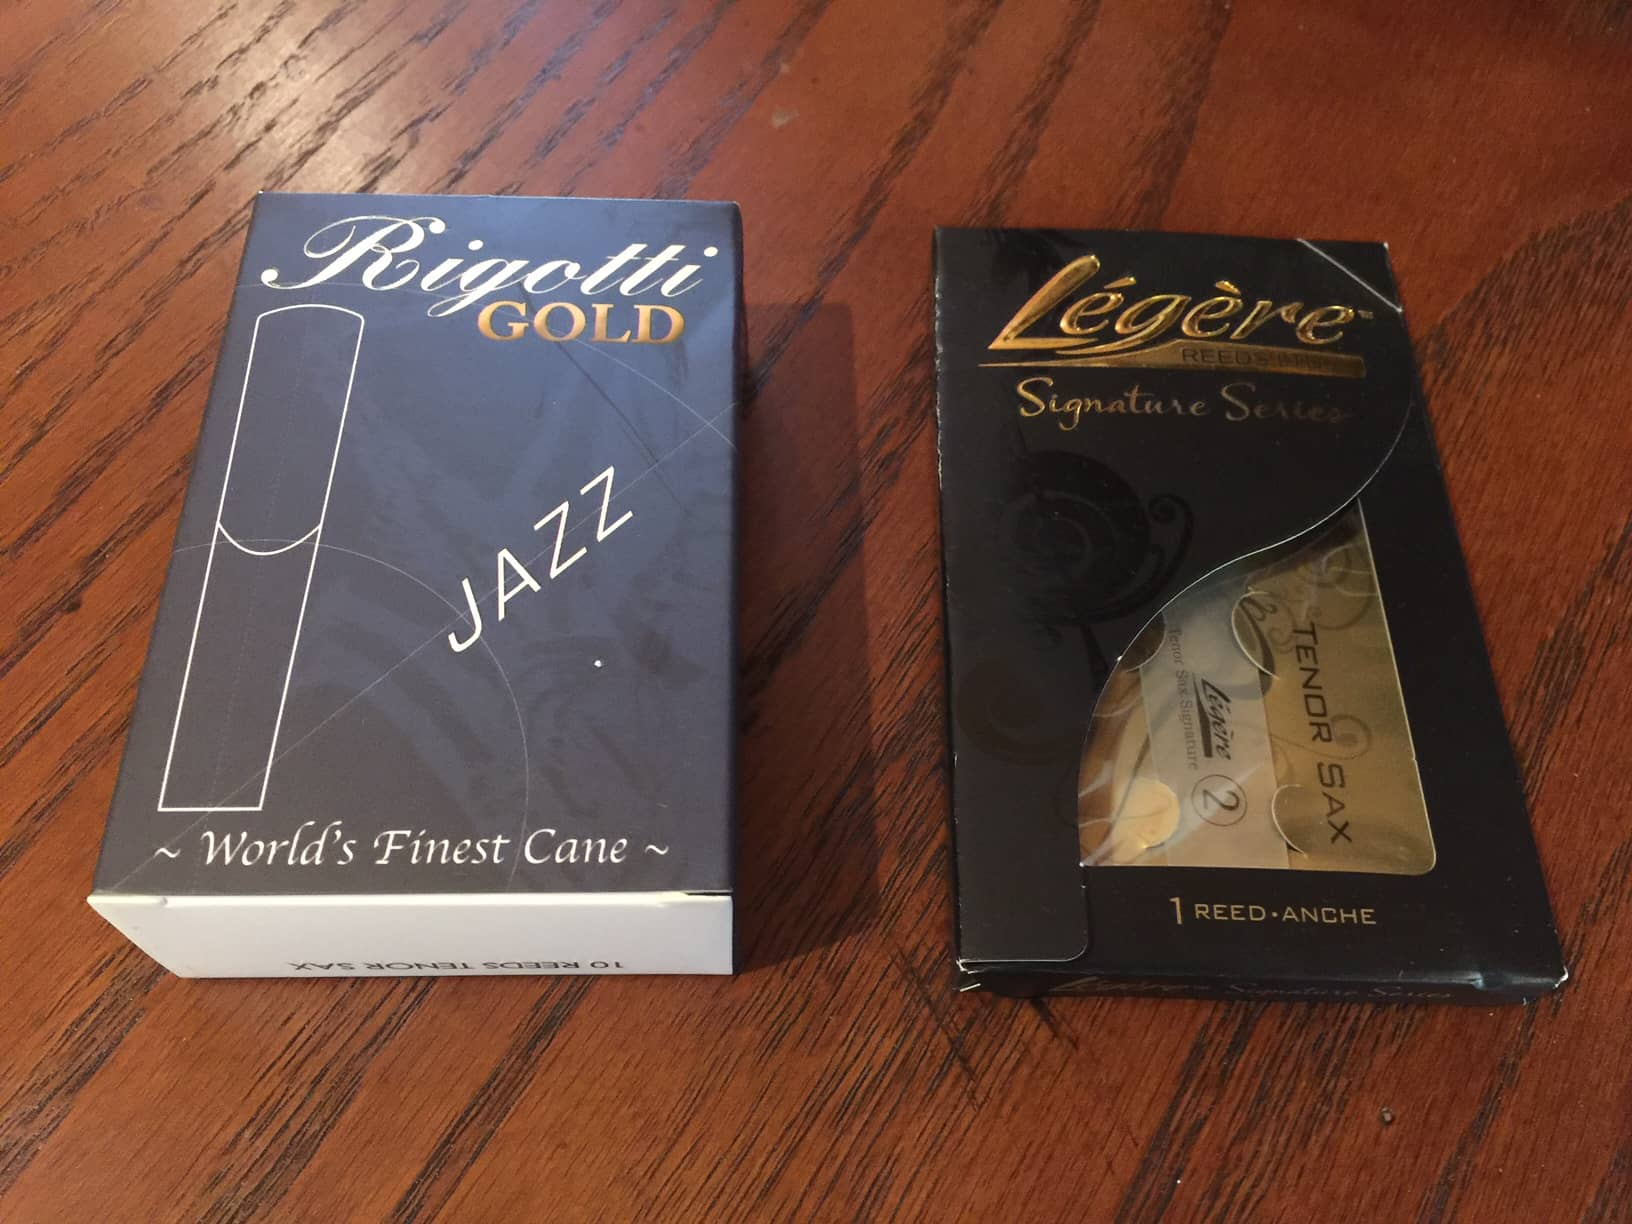 A Fight to the Death-Legere Signature Synthetic Reeds Versus Cane Reeds